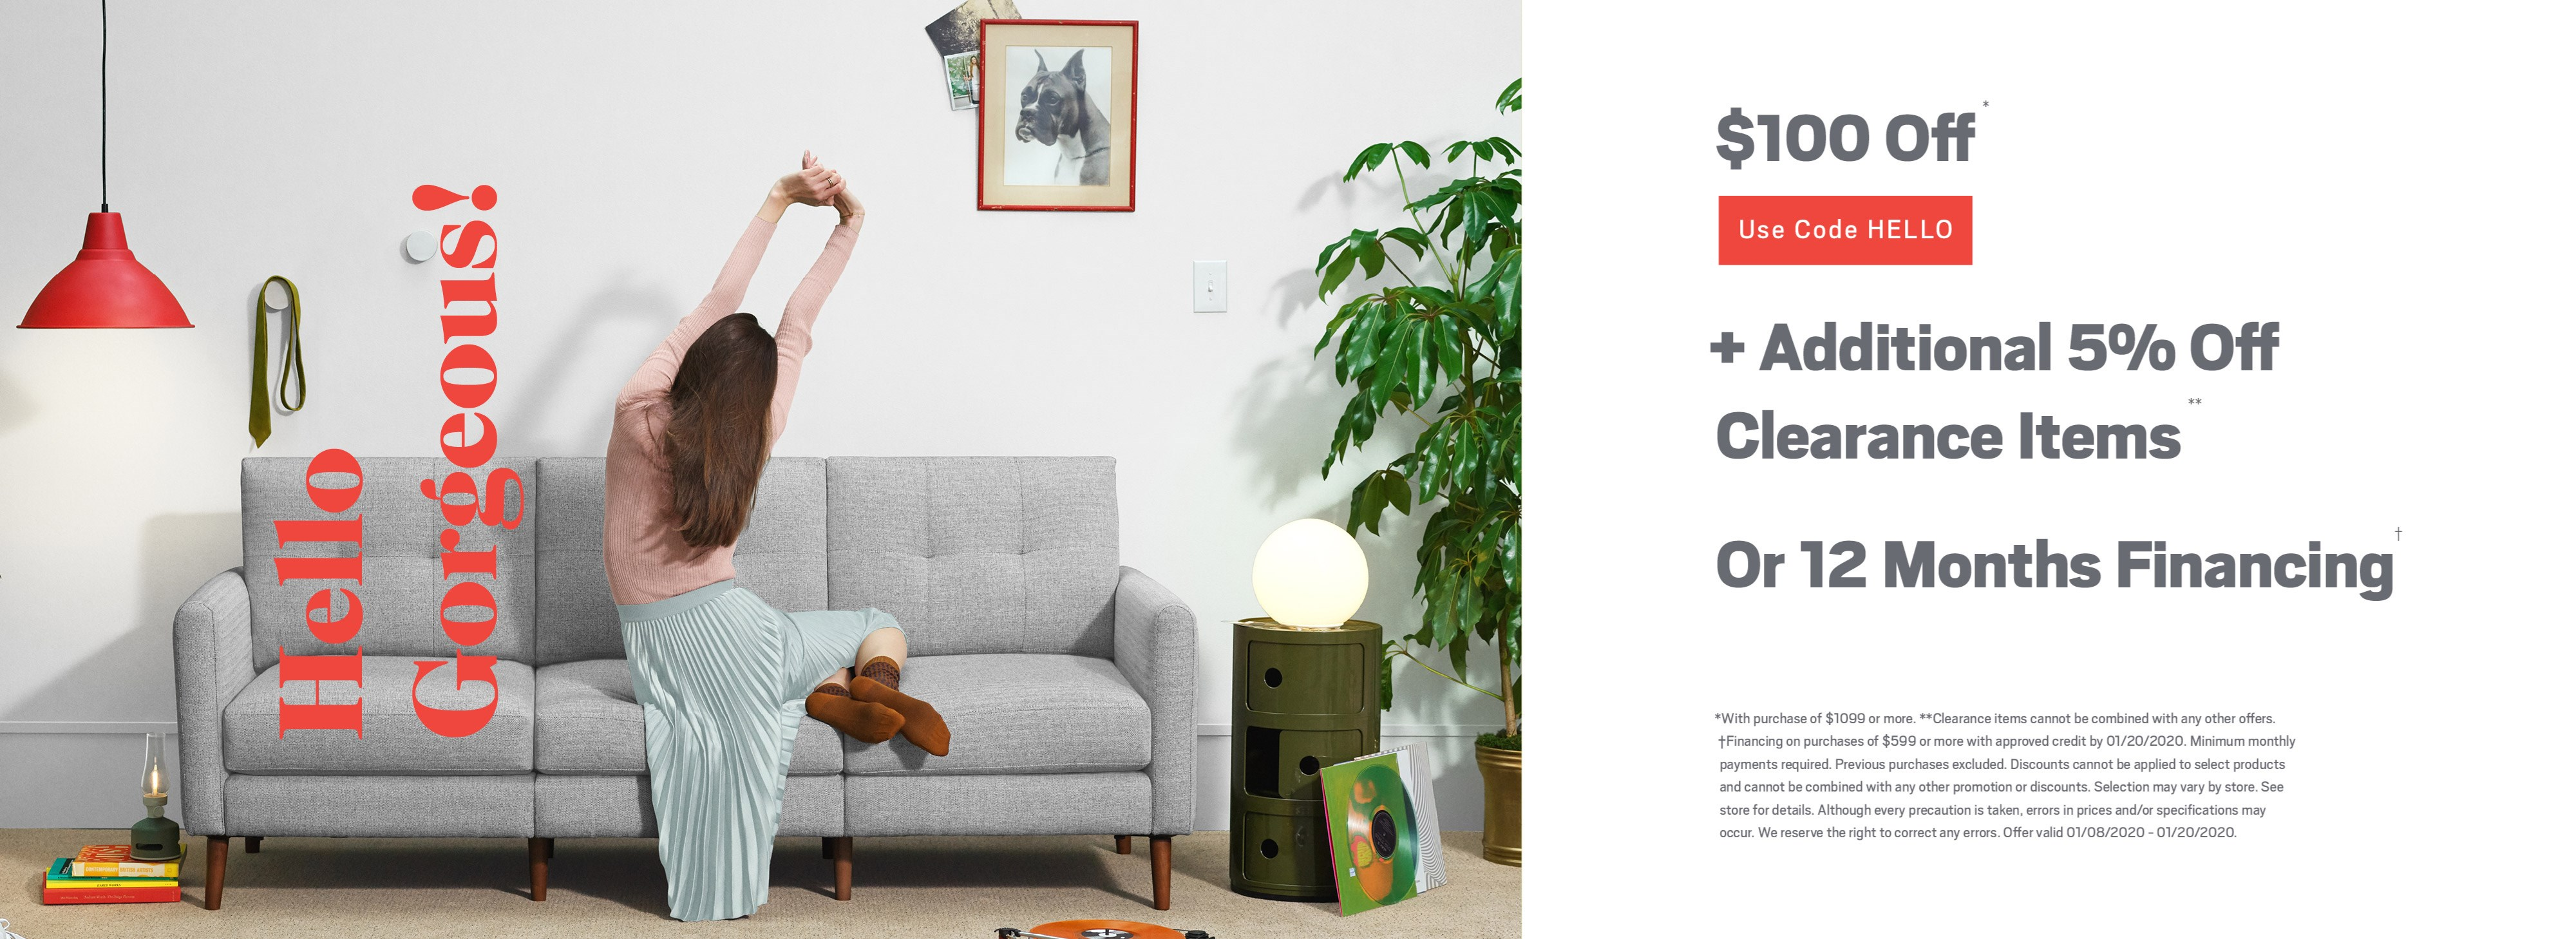 Get $100 off using code HELLO and and additional 5% off clearance items, or ask about 12 months financing; see store for details